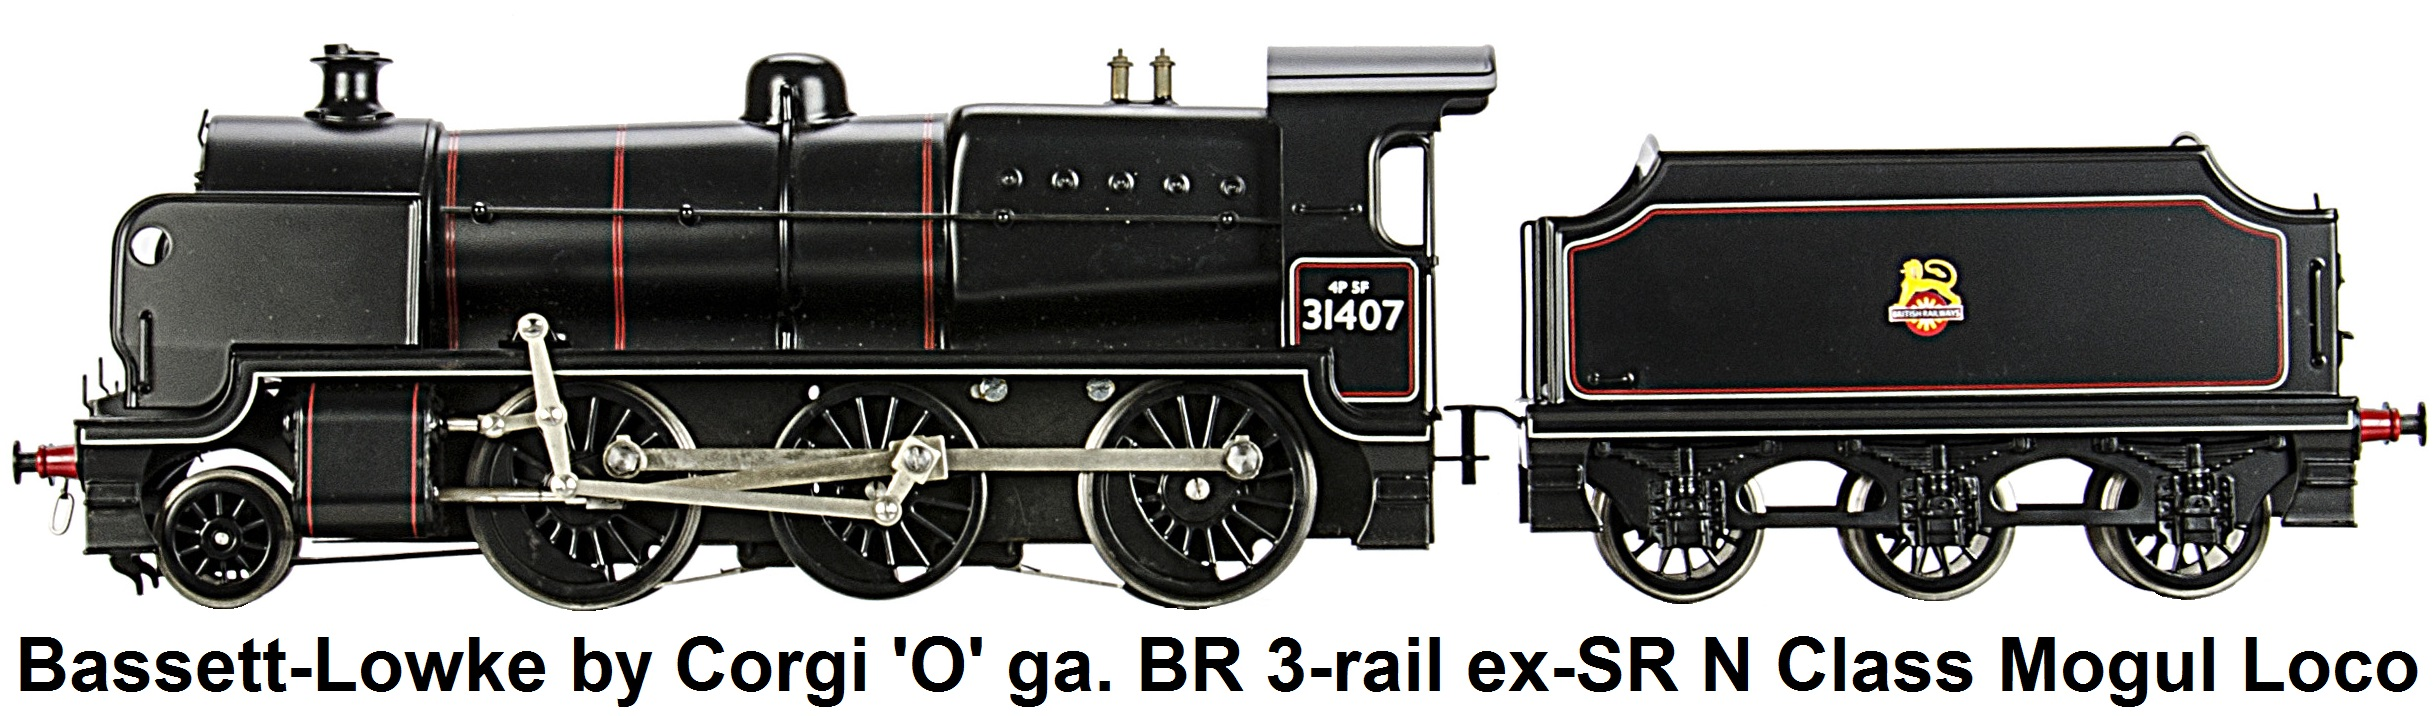 Bassett-Lowke by Corgi 'O' gauge 3-rail electric ex-Southern Railway N class 2-6-0 Mogul Locomotive and Tender, finished in British Rail lined black as #31407 with early crest